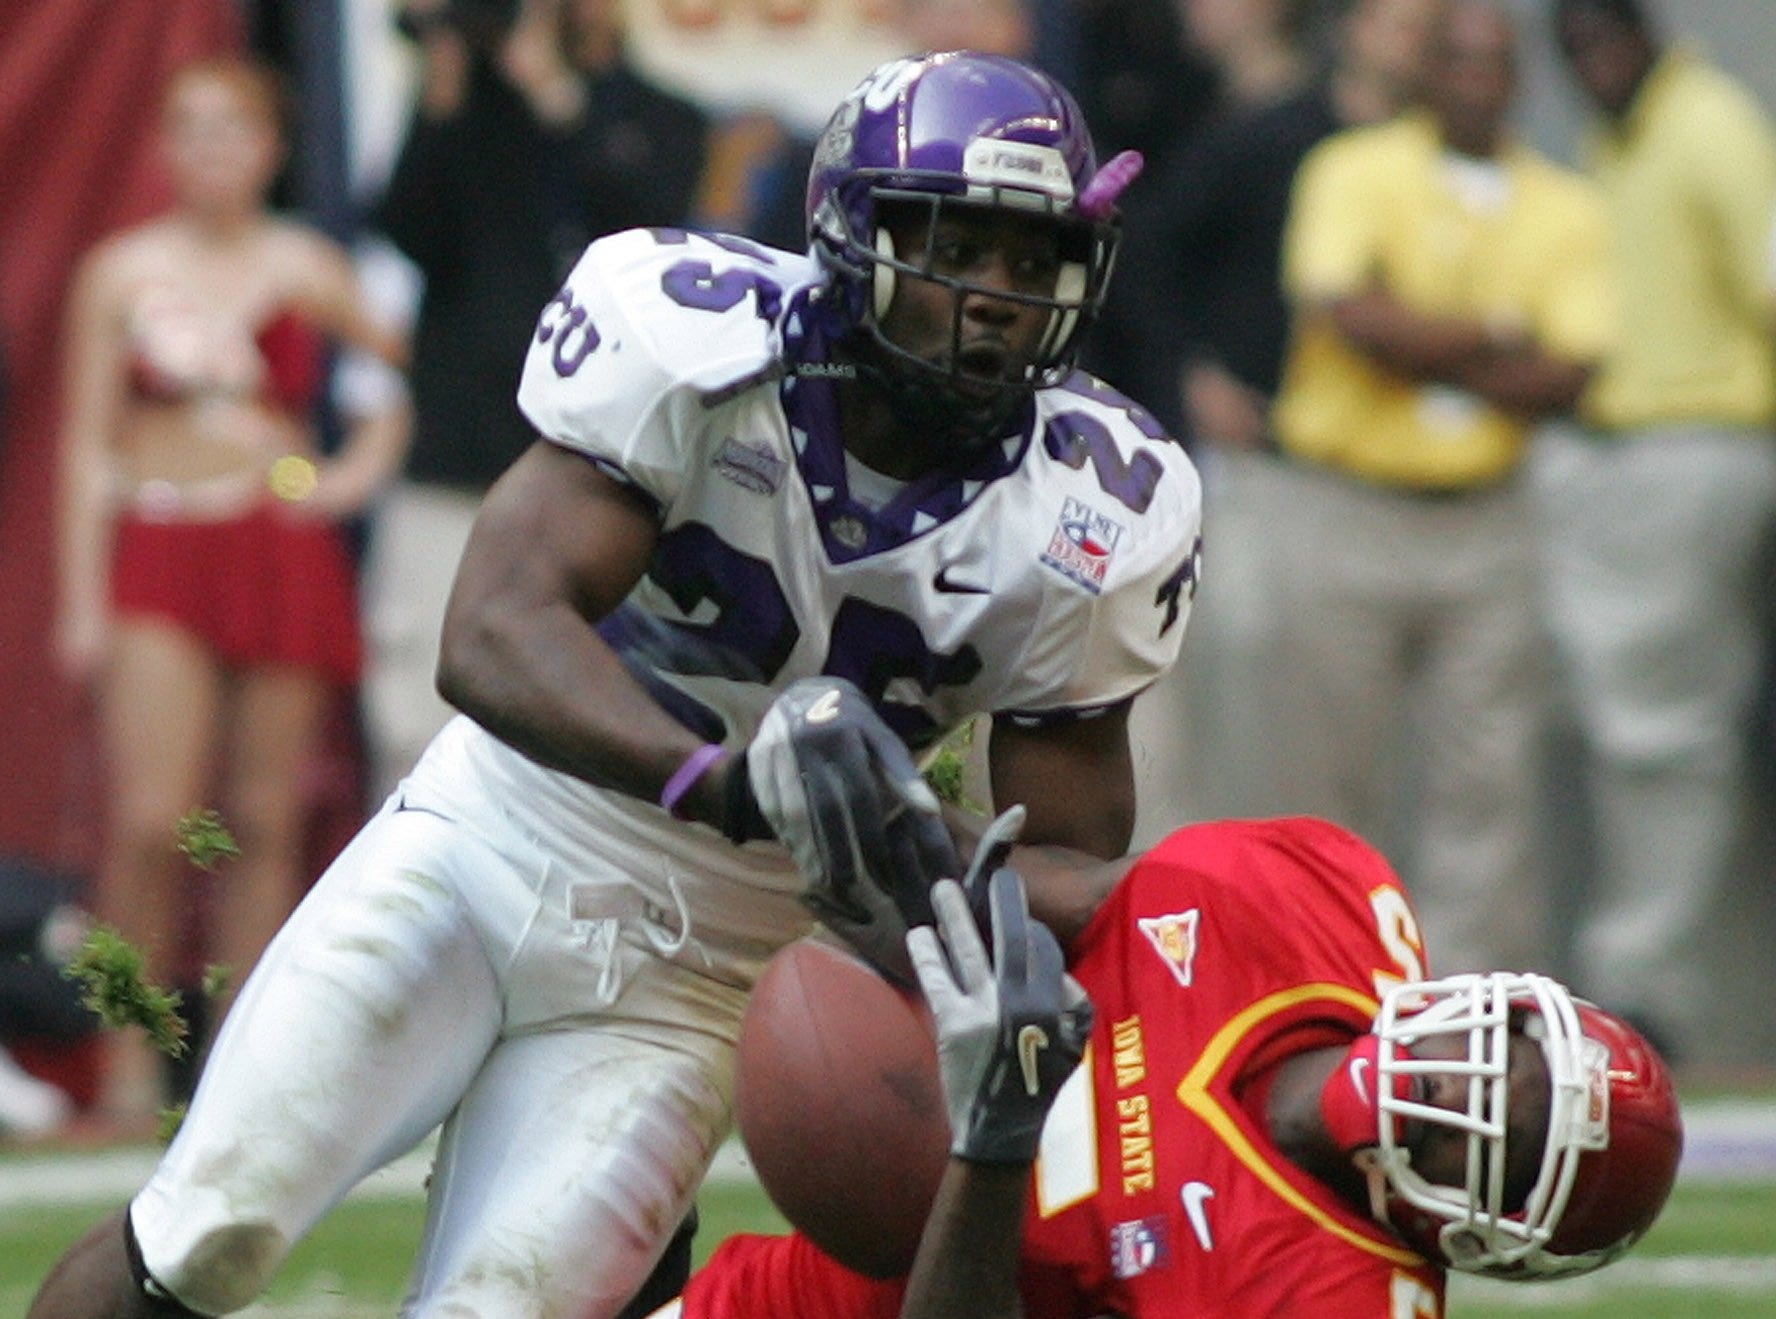 TCU's Eric Buchanan knocks the ball out of Iowa State receiver R.J. Sumrall's hands during the No. 14 Horned Frogs' 27-24 Houston Bowl victory in 2005.